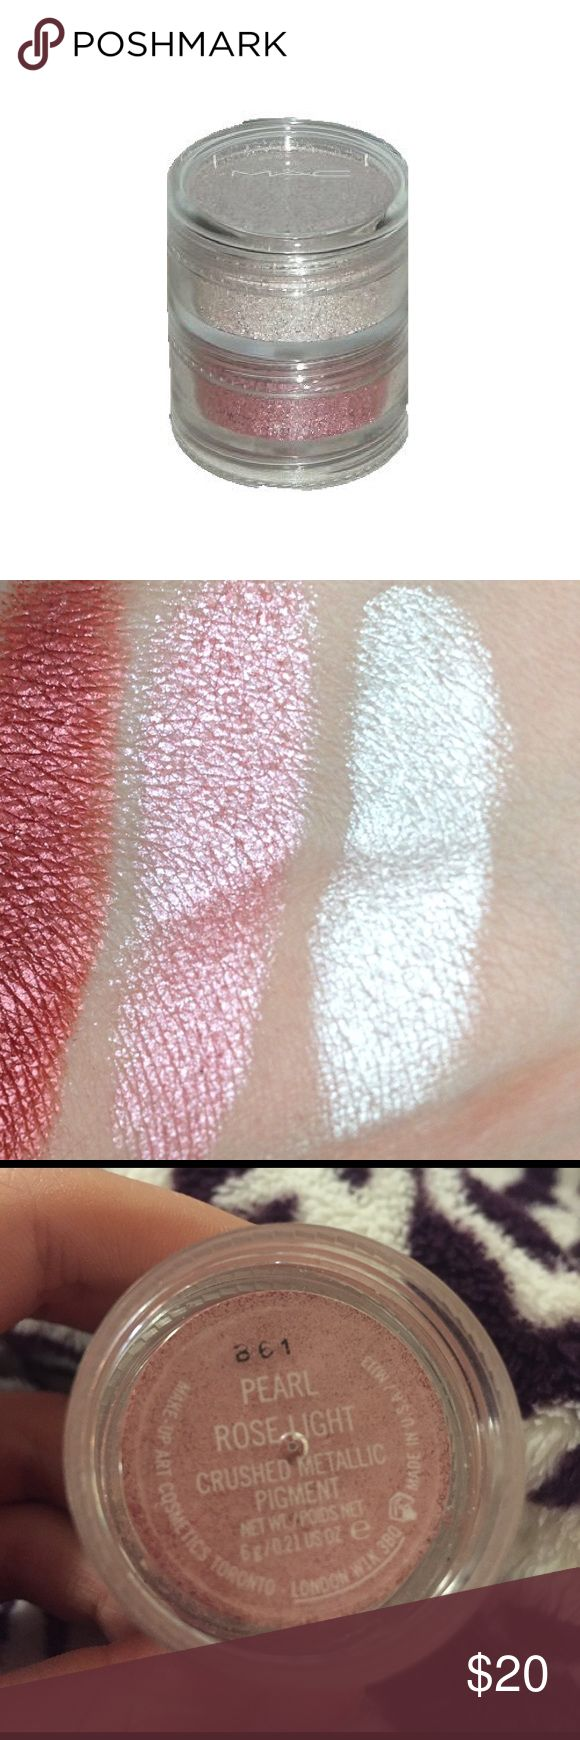 277 best make up images on pinterest cosmetics mac lipstick and mac crushed metallic pigments two rarediscontinued mac metallic crushed eyeshadow pigments in pearl and rose light only swatched geenschuldenfo Image collections